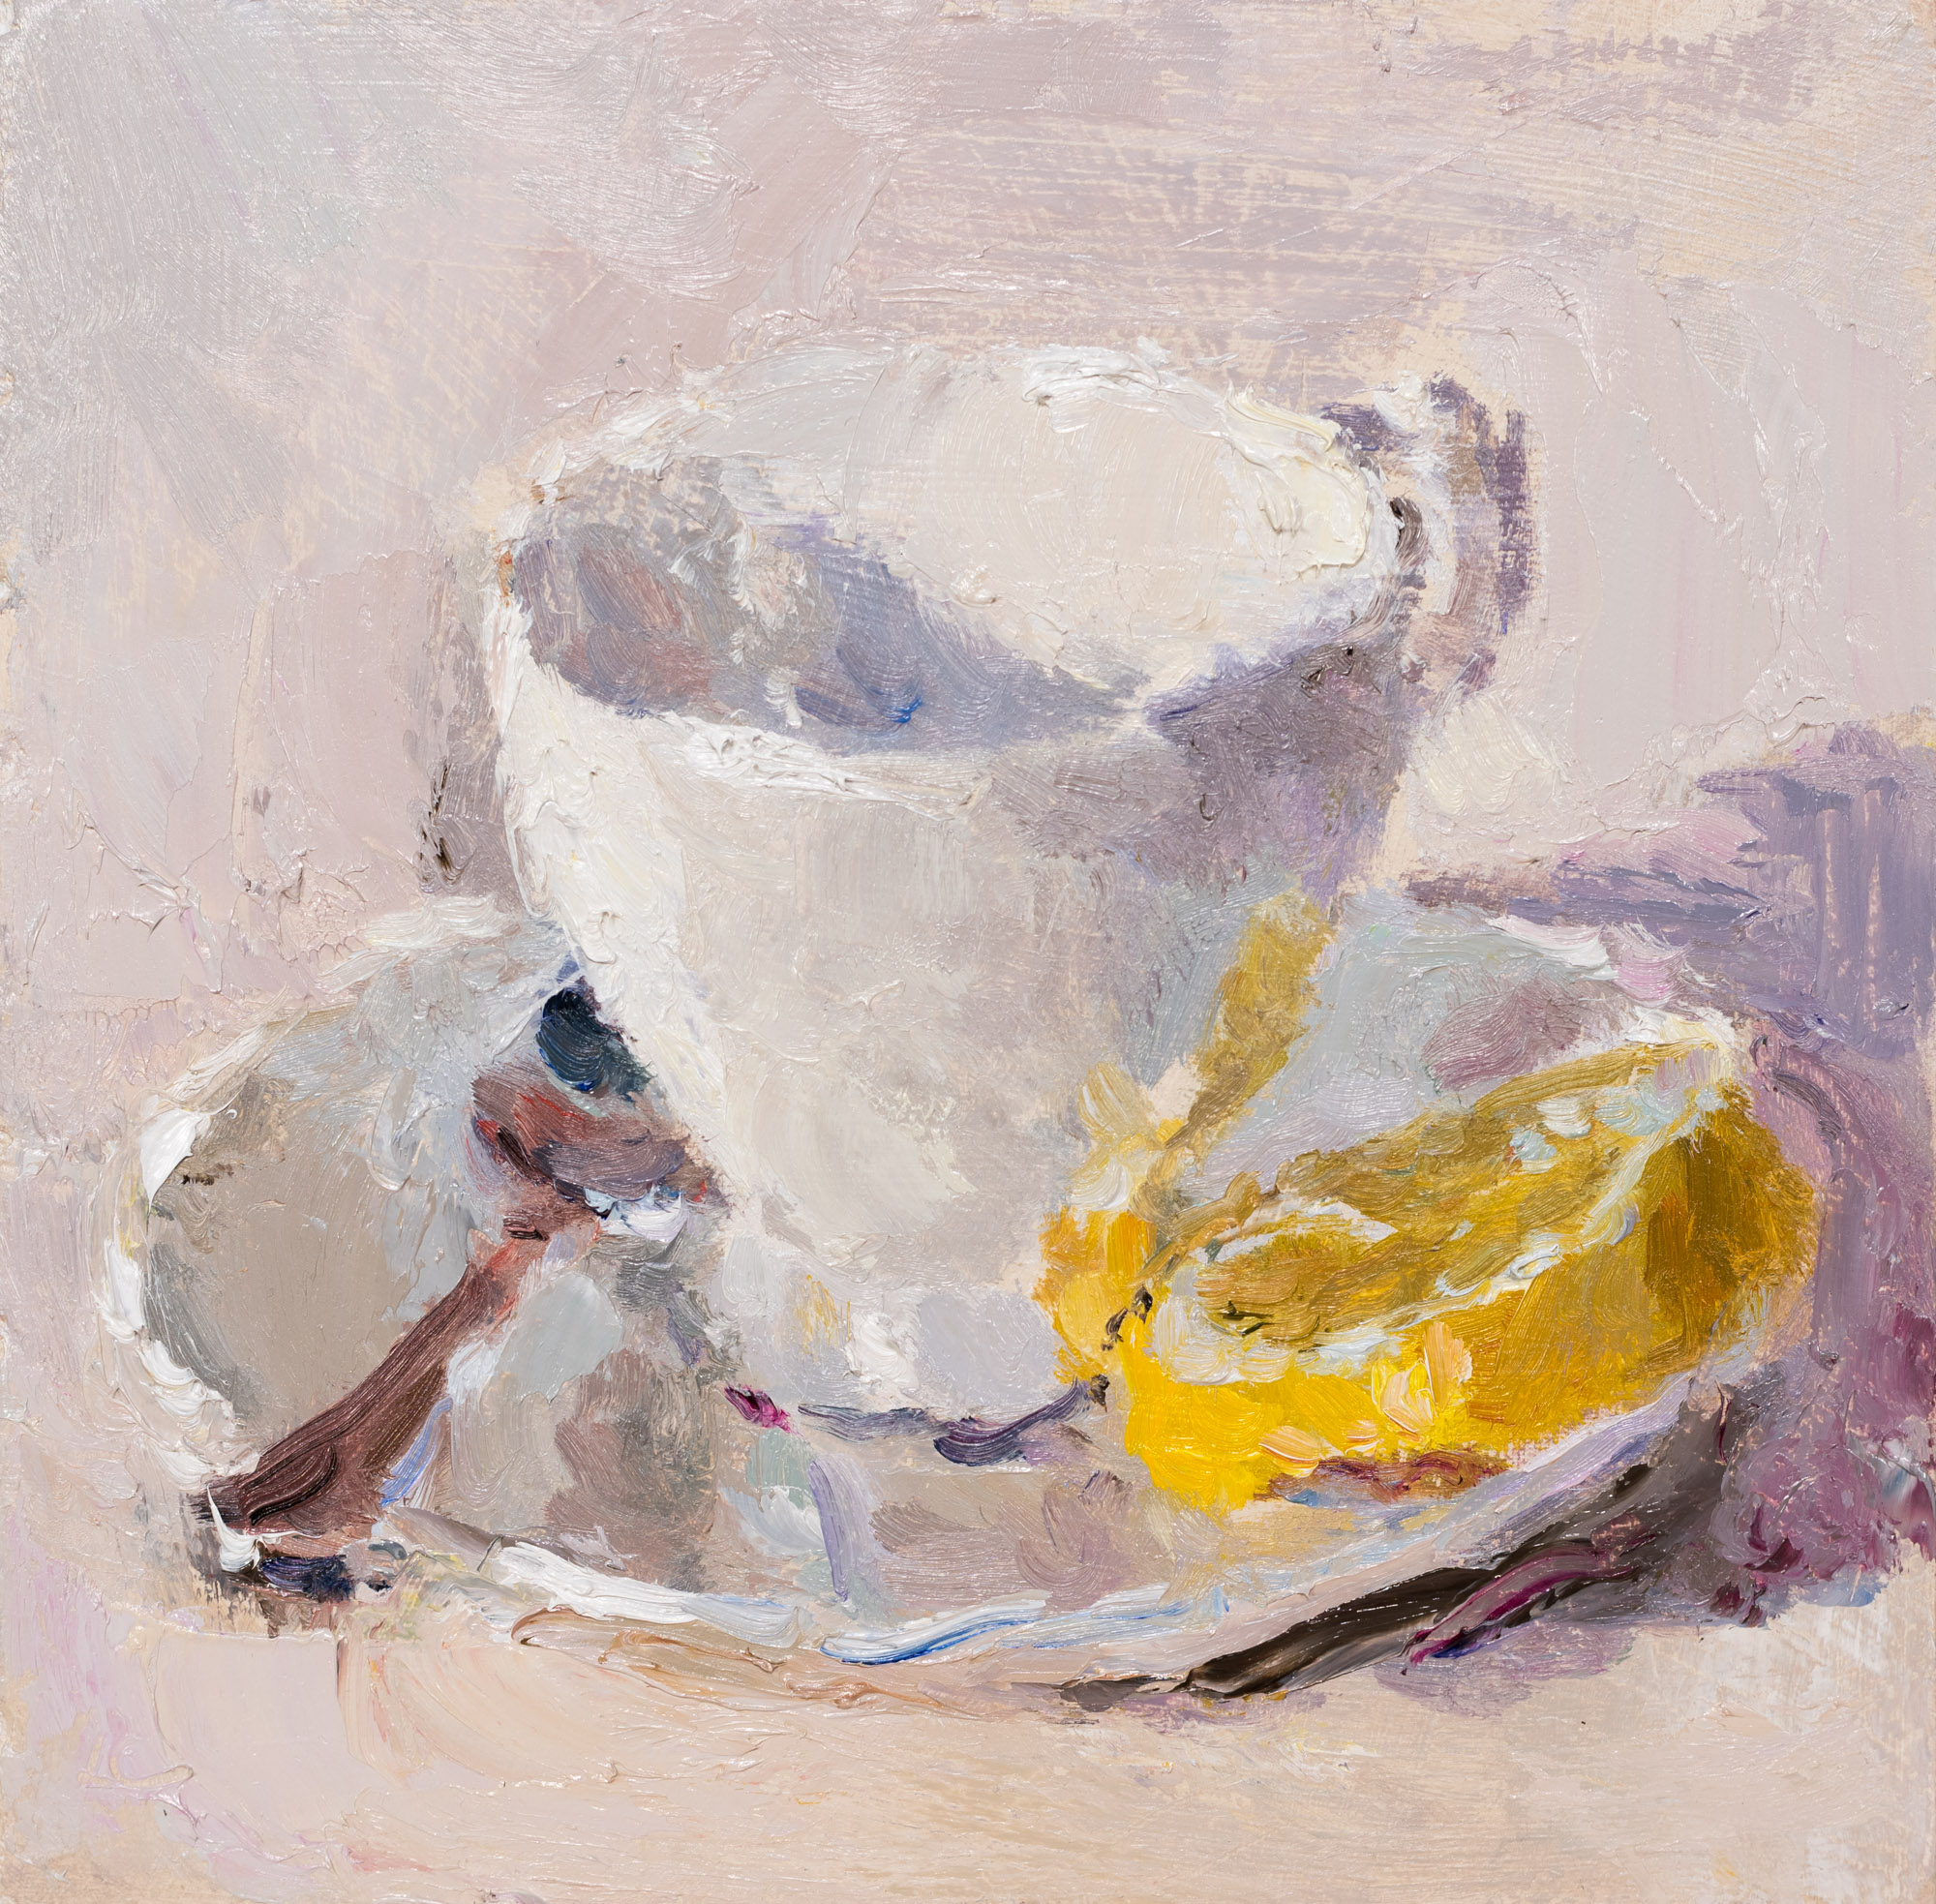 Teacup, Lemon and Spoon, Oil on Board, 17.2cm x 17.5cm (2019-40)  SOLD